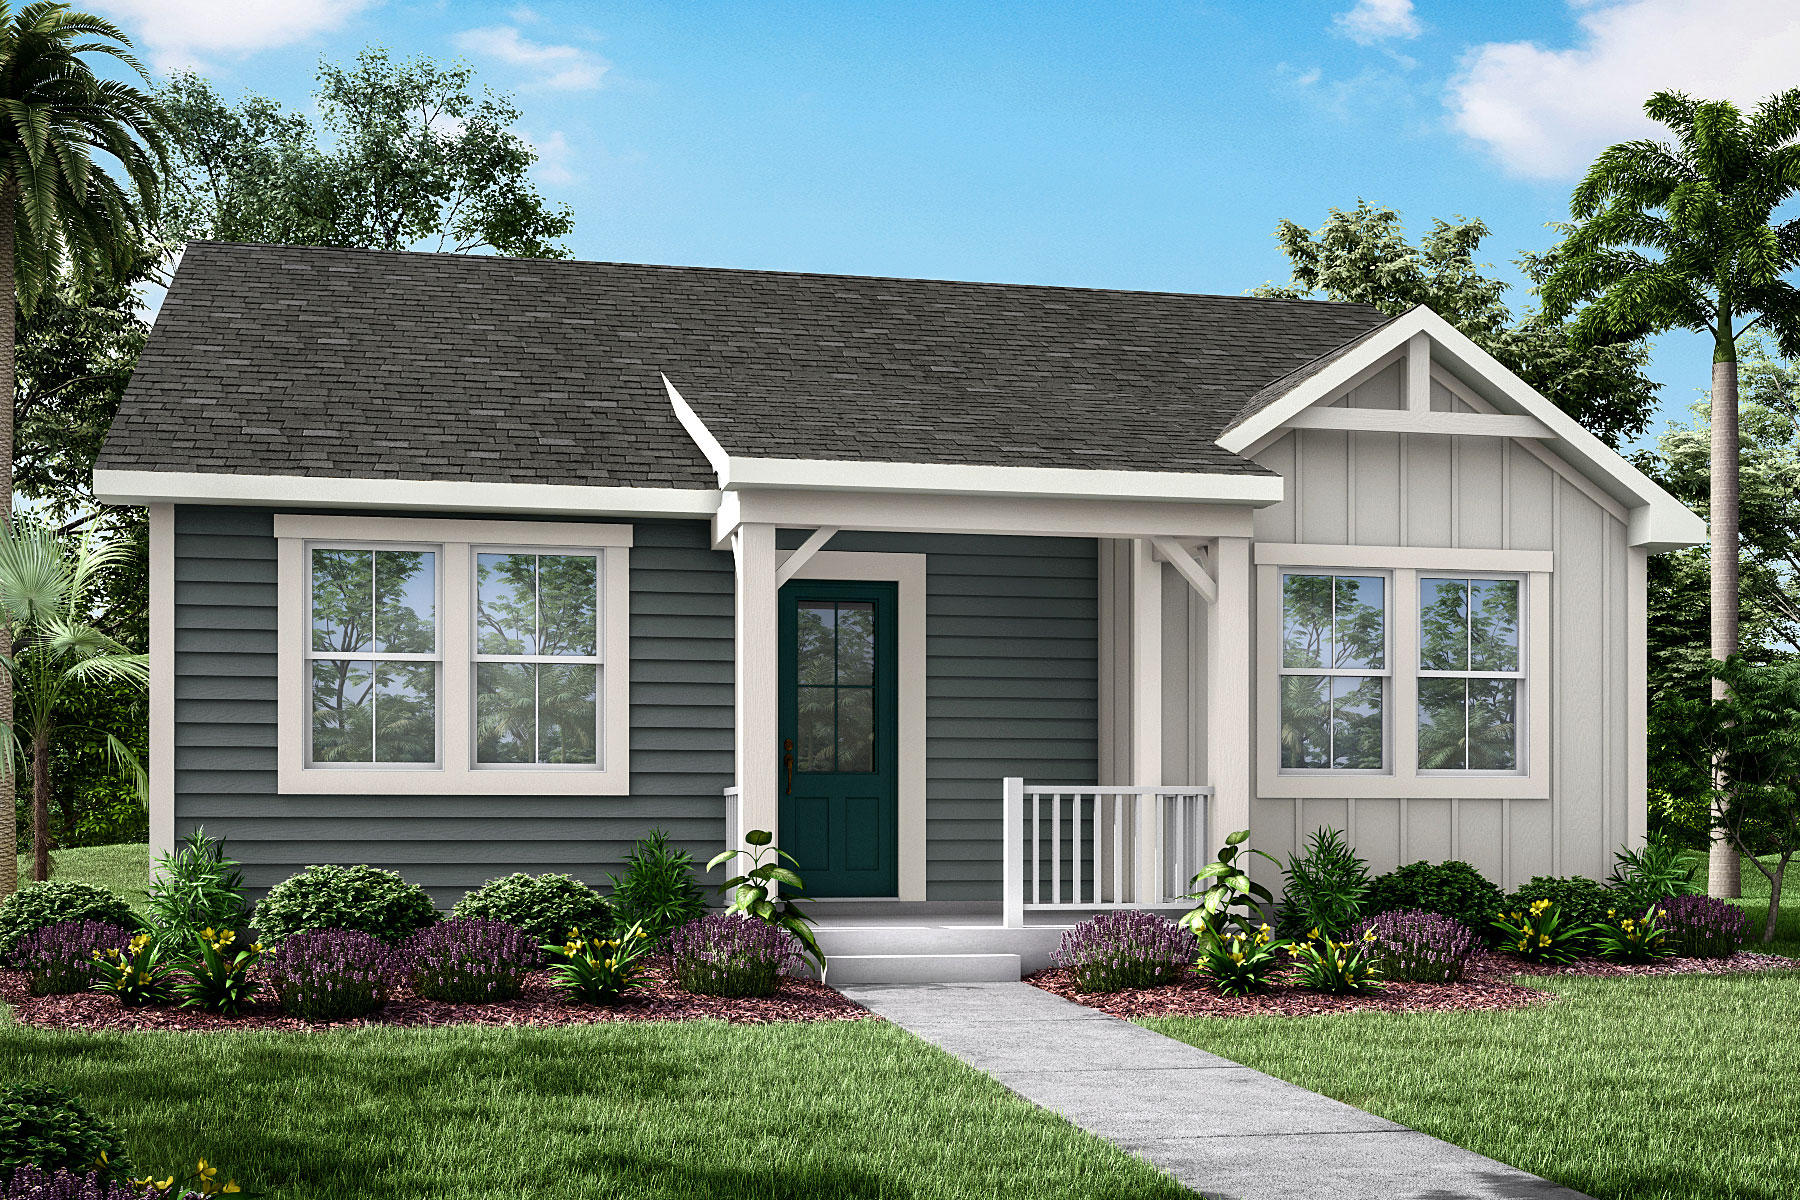 Newport Plan JAX_Wildlight_Newport_Farmhouse at Forest Park at Wildlight in Yulee Florida by Mattamy Homes